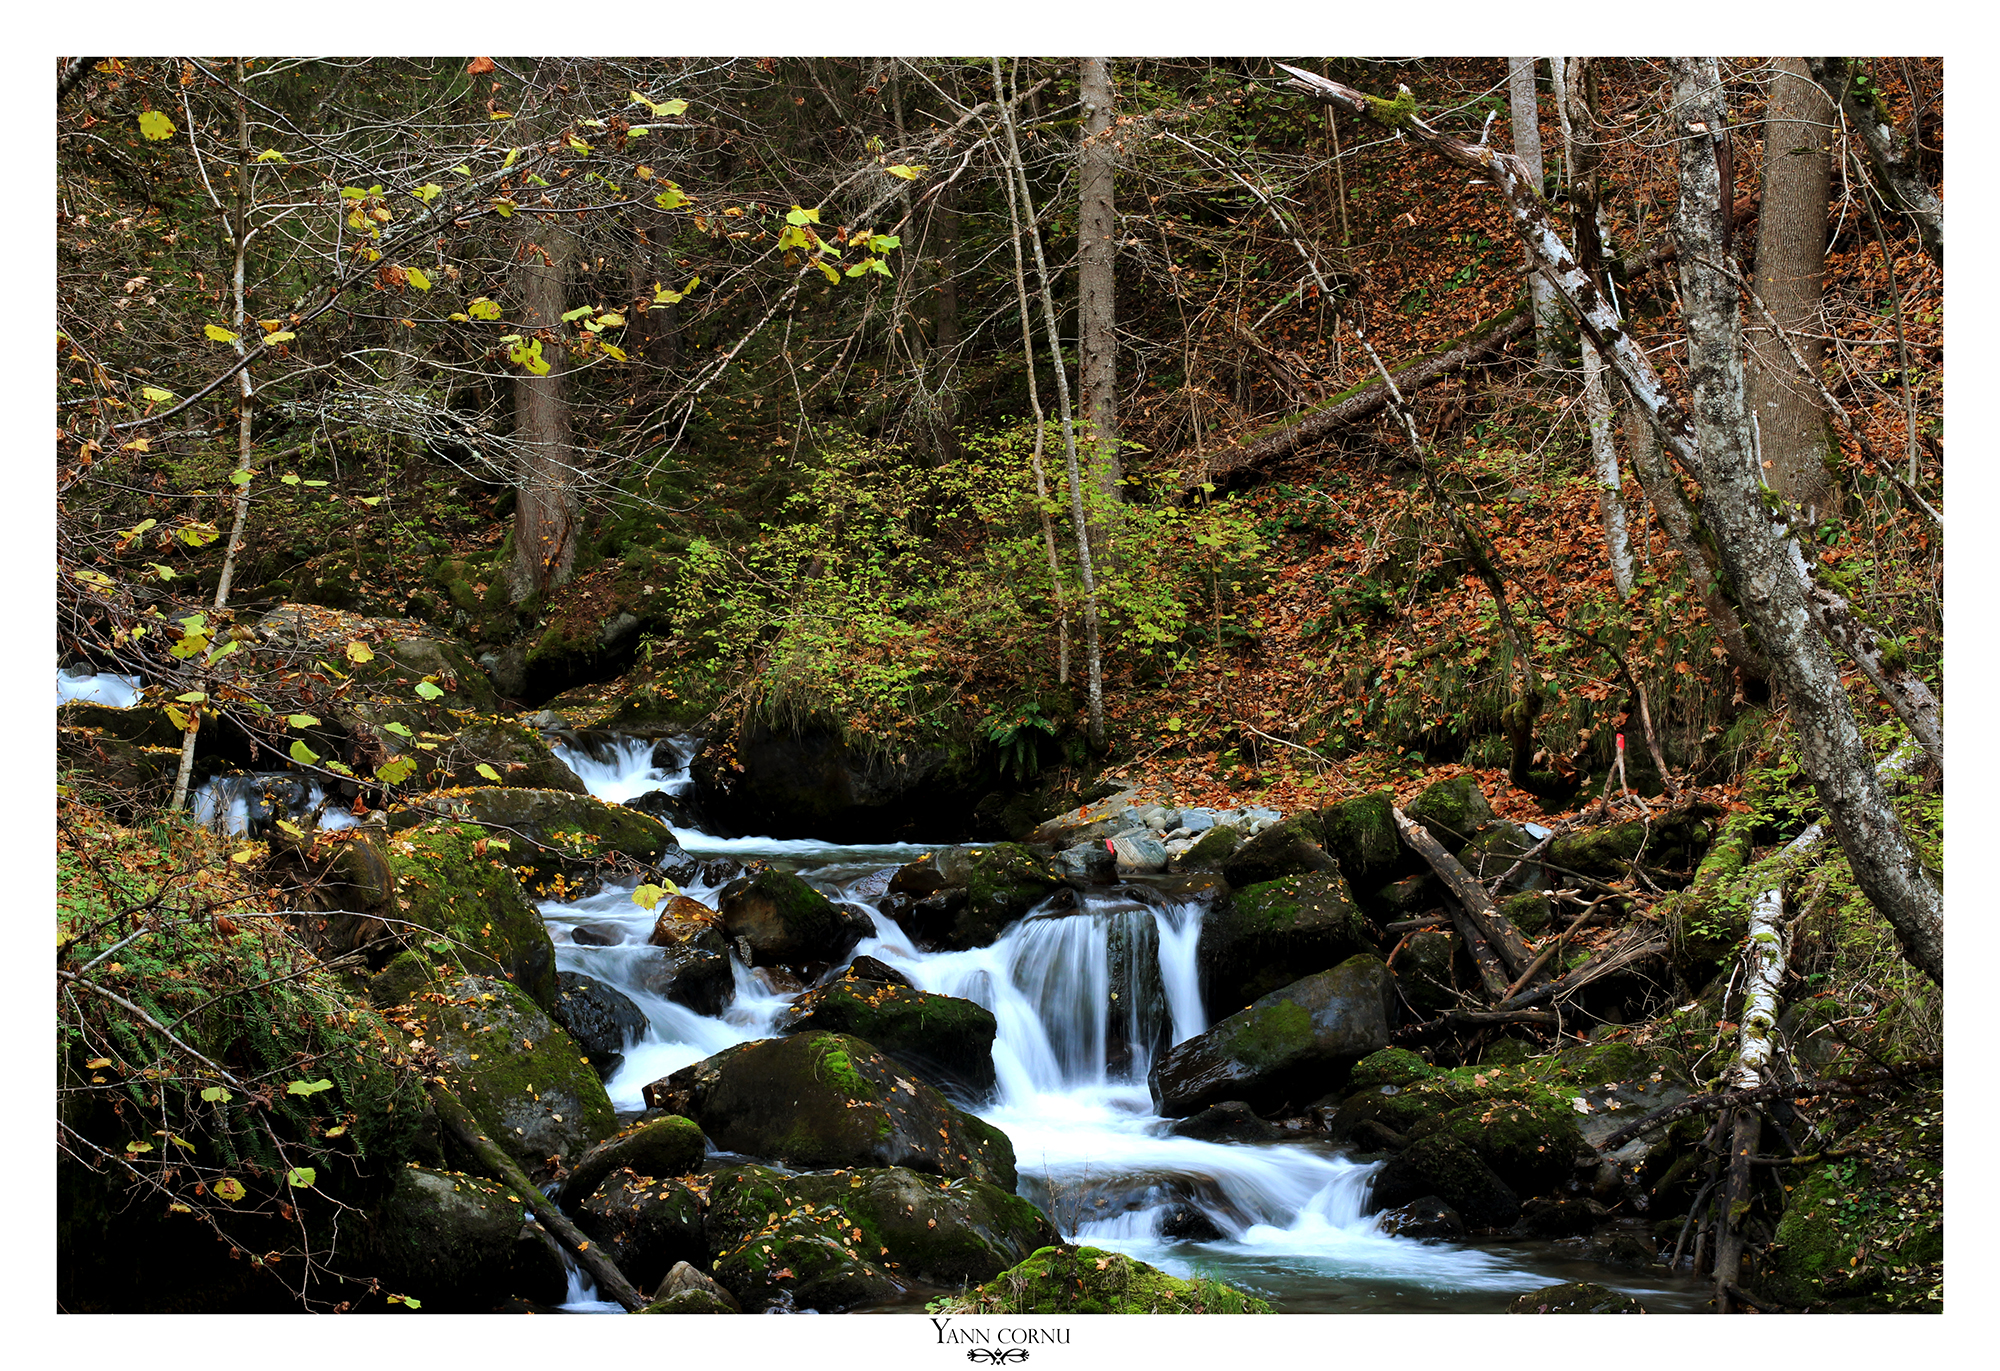 Torrent de la Sarenne 2